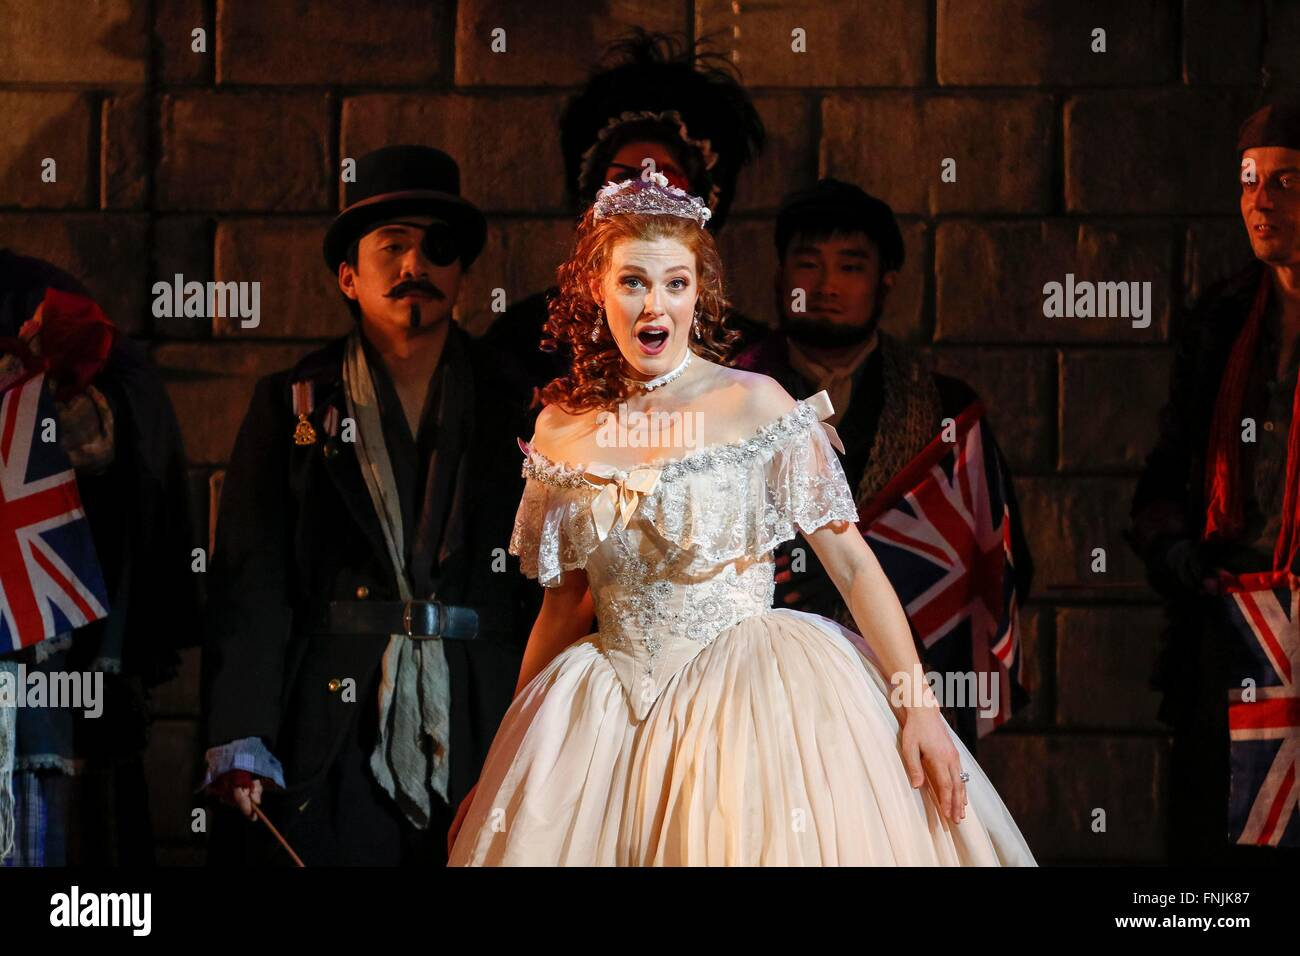 Oper Leipzig, DE, 15th of March 2016, Wallis Giunta performs as Angelina in Gioacchino Rossini's opera 'La - Stock Image